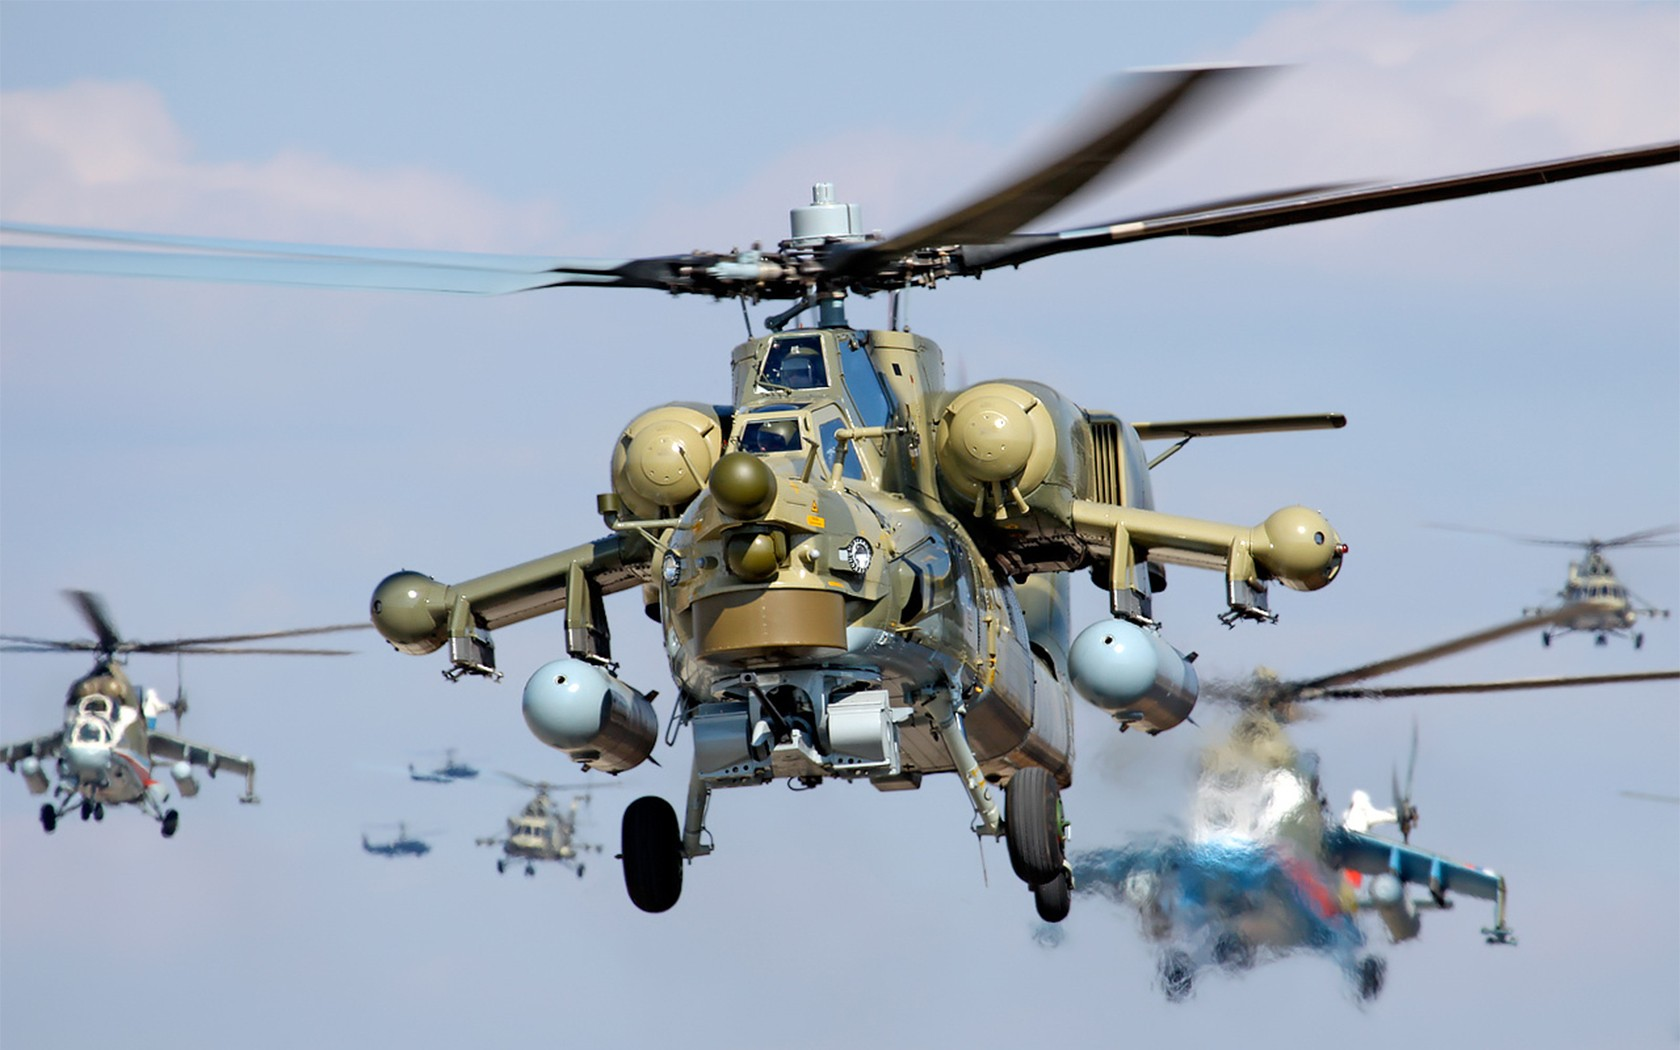 Elicottero Havoc : Wallpaper mi attack helicopter russian army military